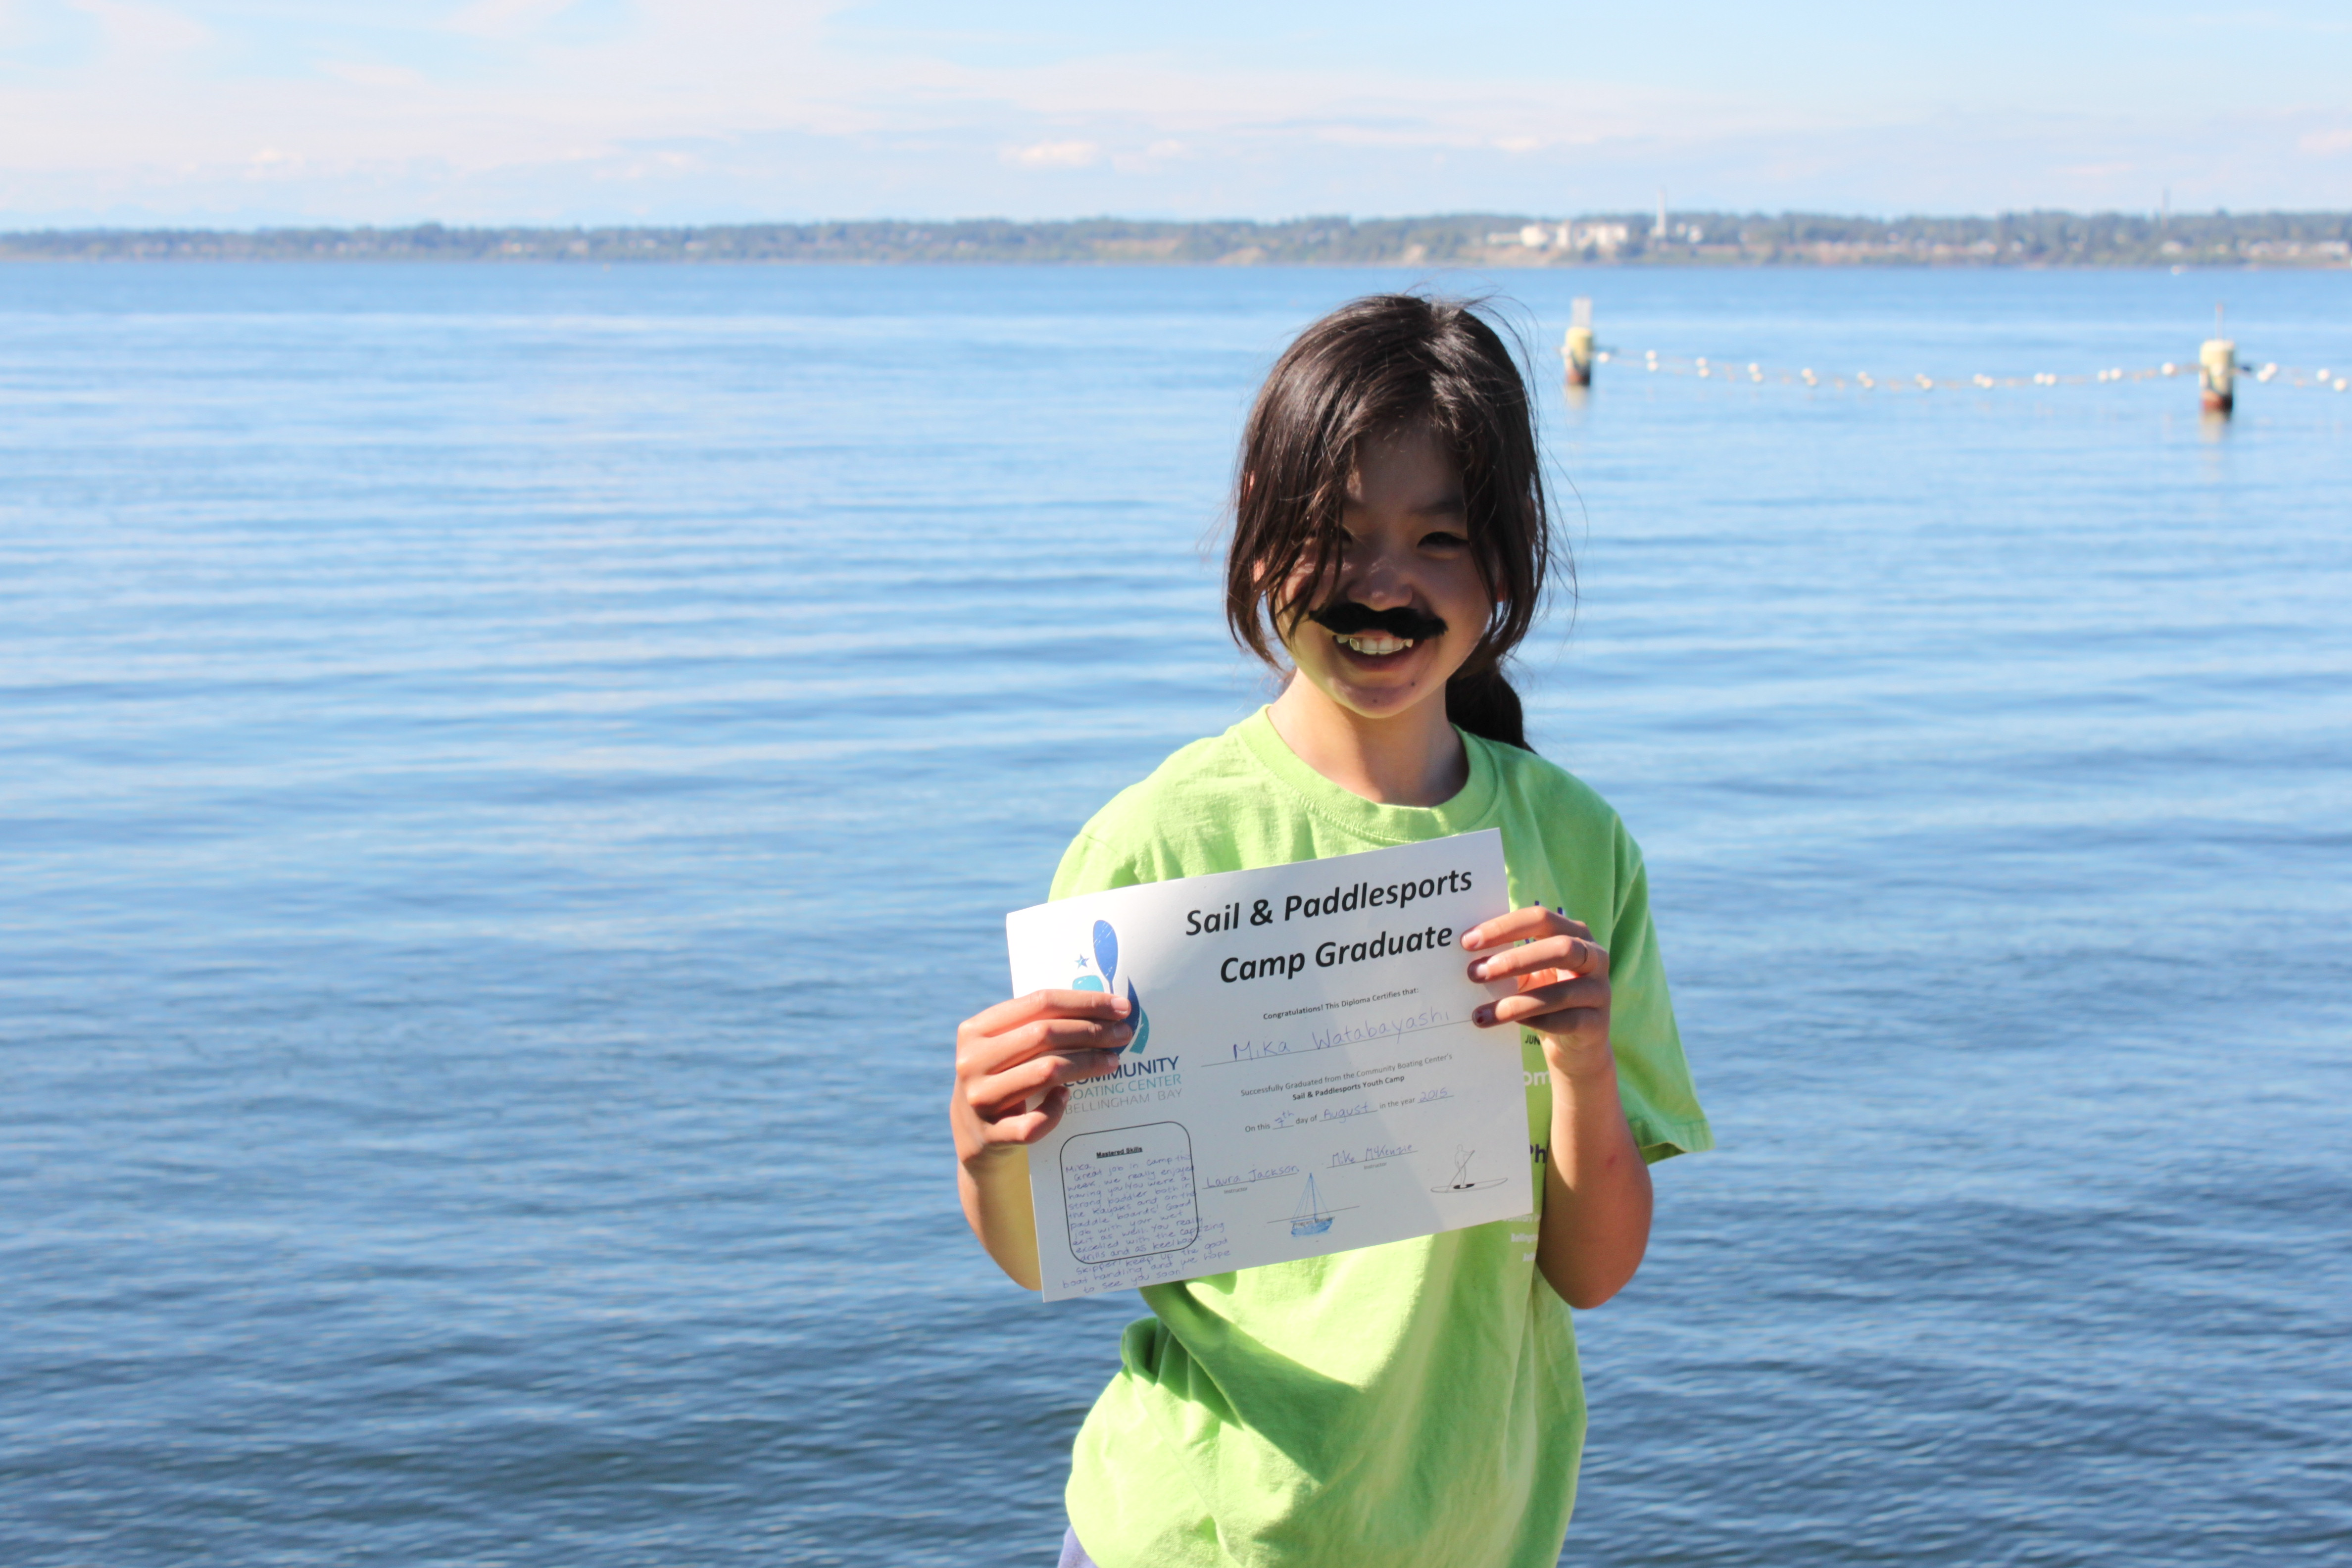 Copy of Sail & Paddlesports Camp Graduate 2015